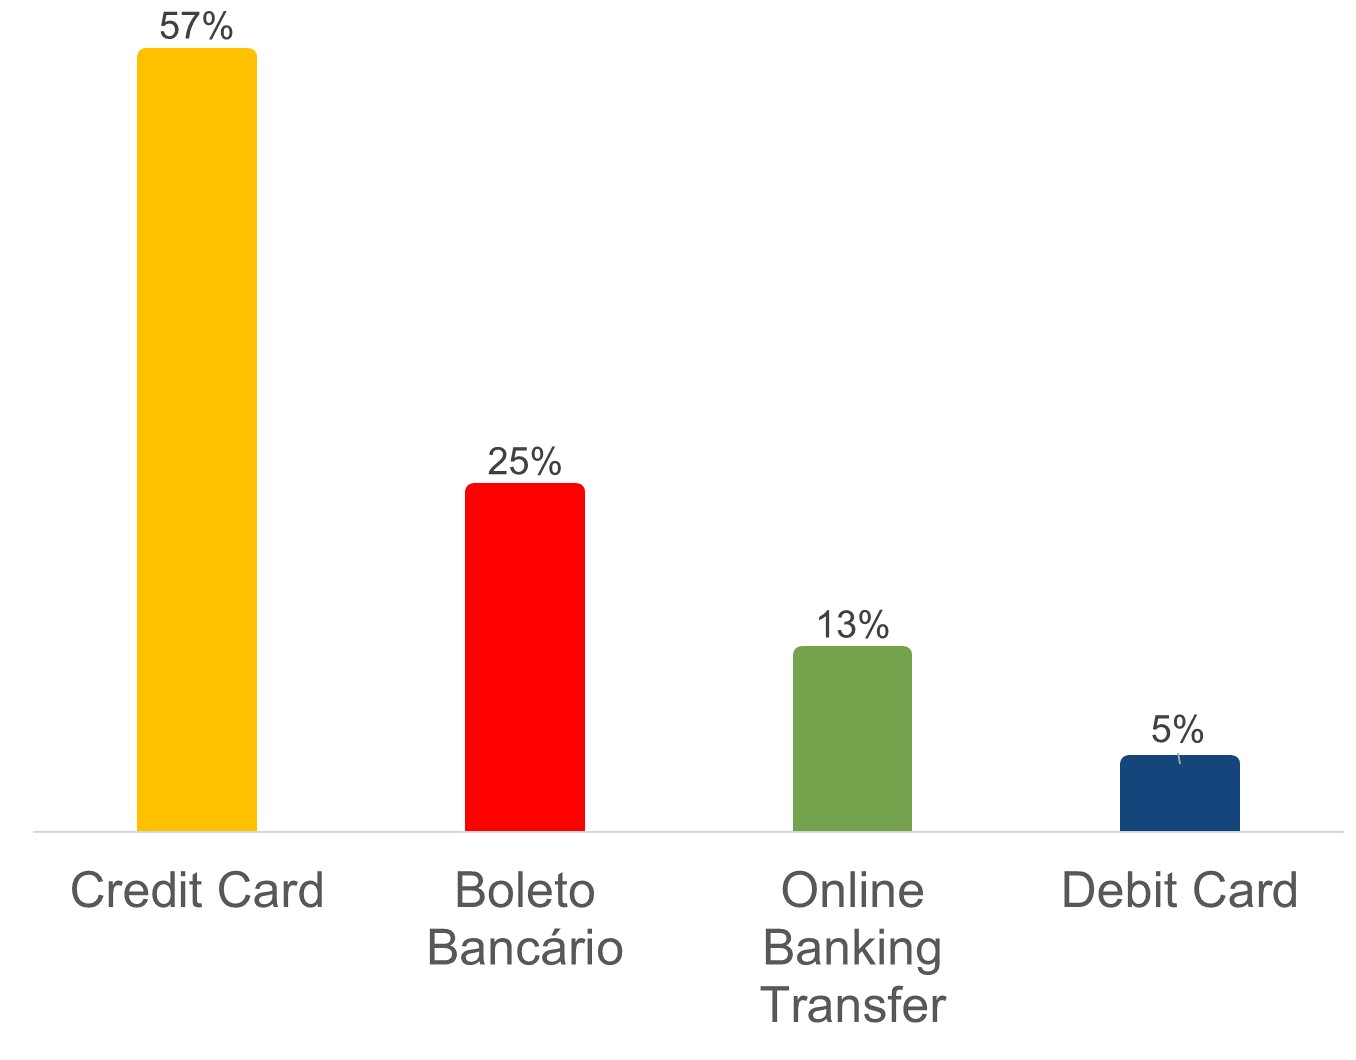 online payments in brazil market share